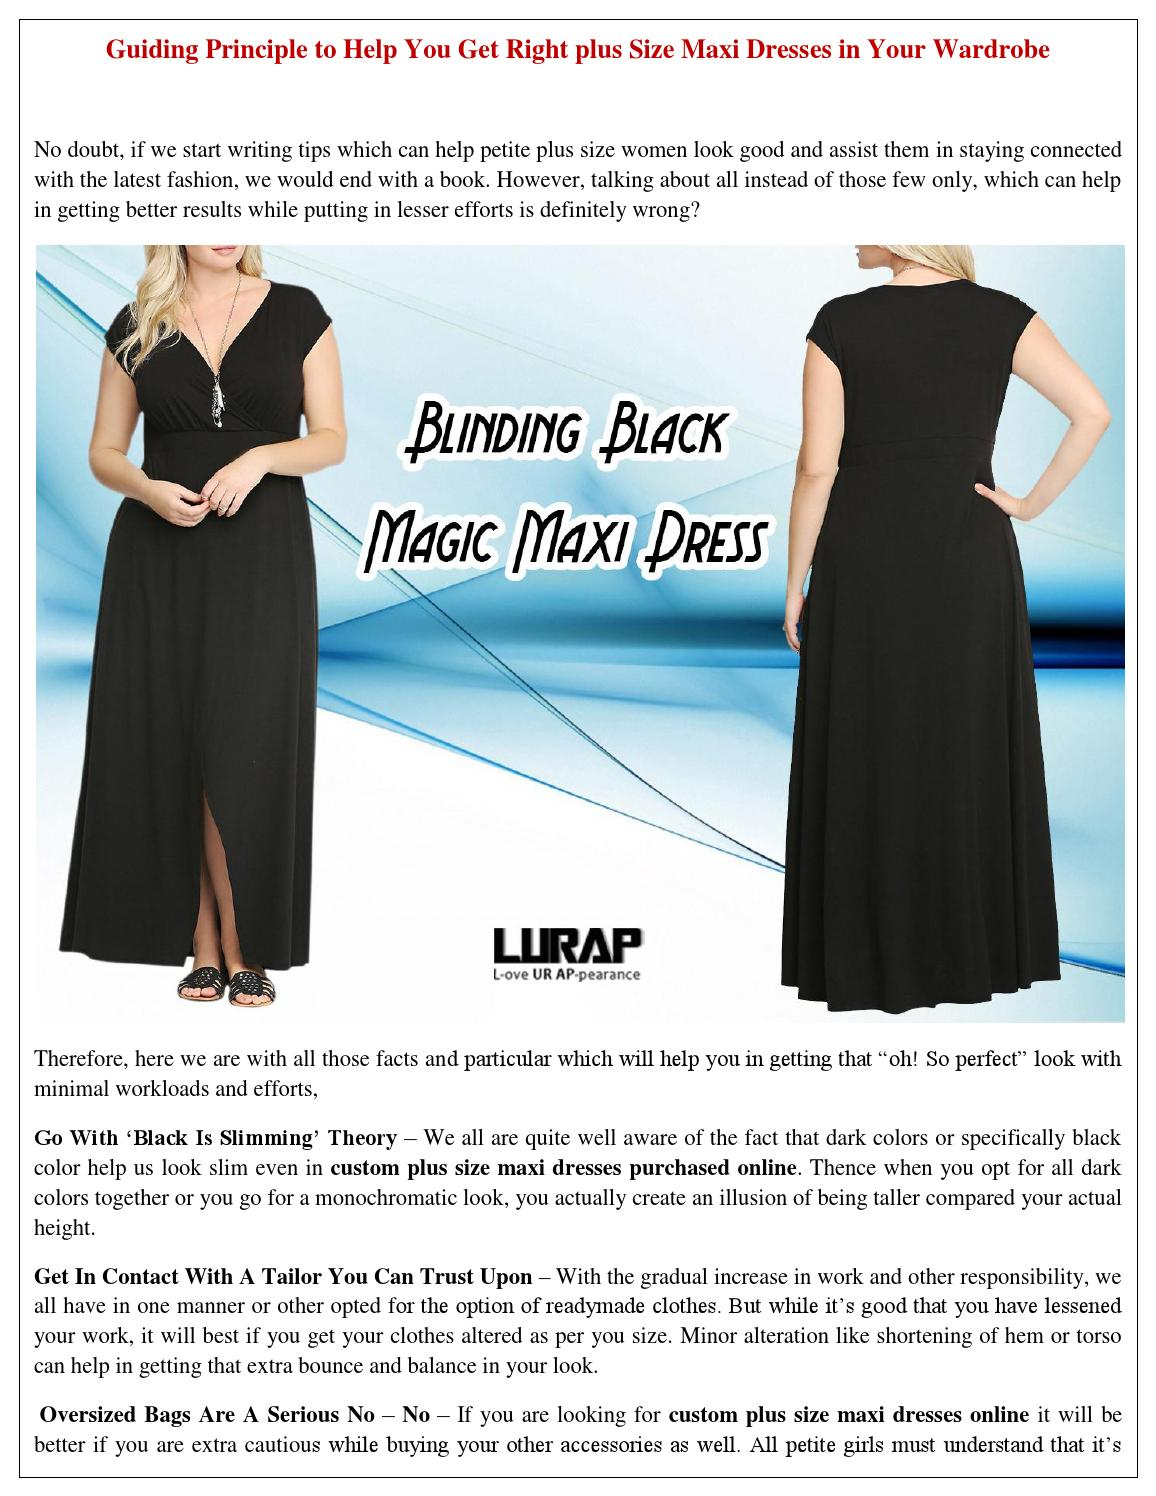 57f6b63b Get right plus size maxi dresses in your wardrobe by Lurap Fashion - issuu